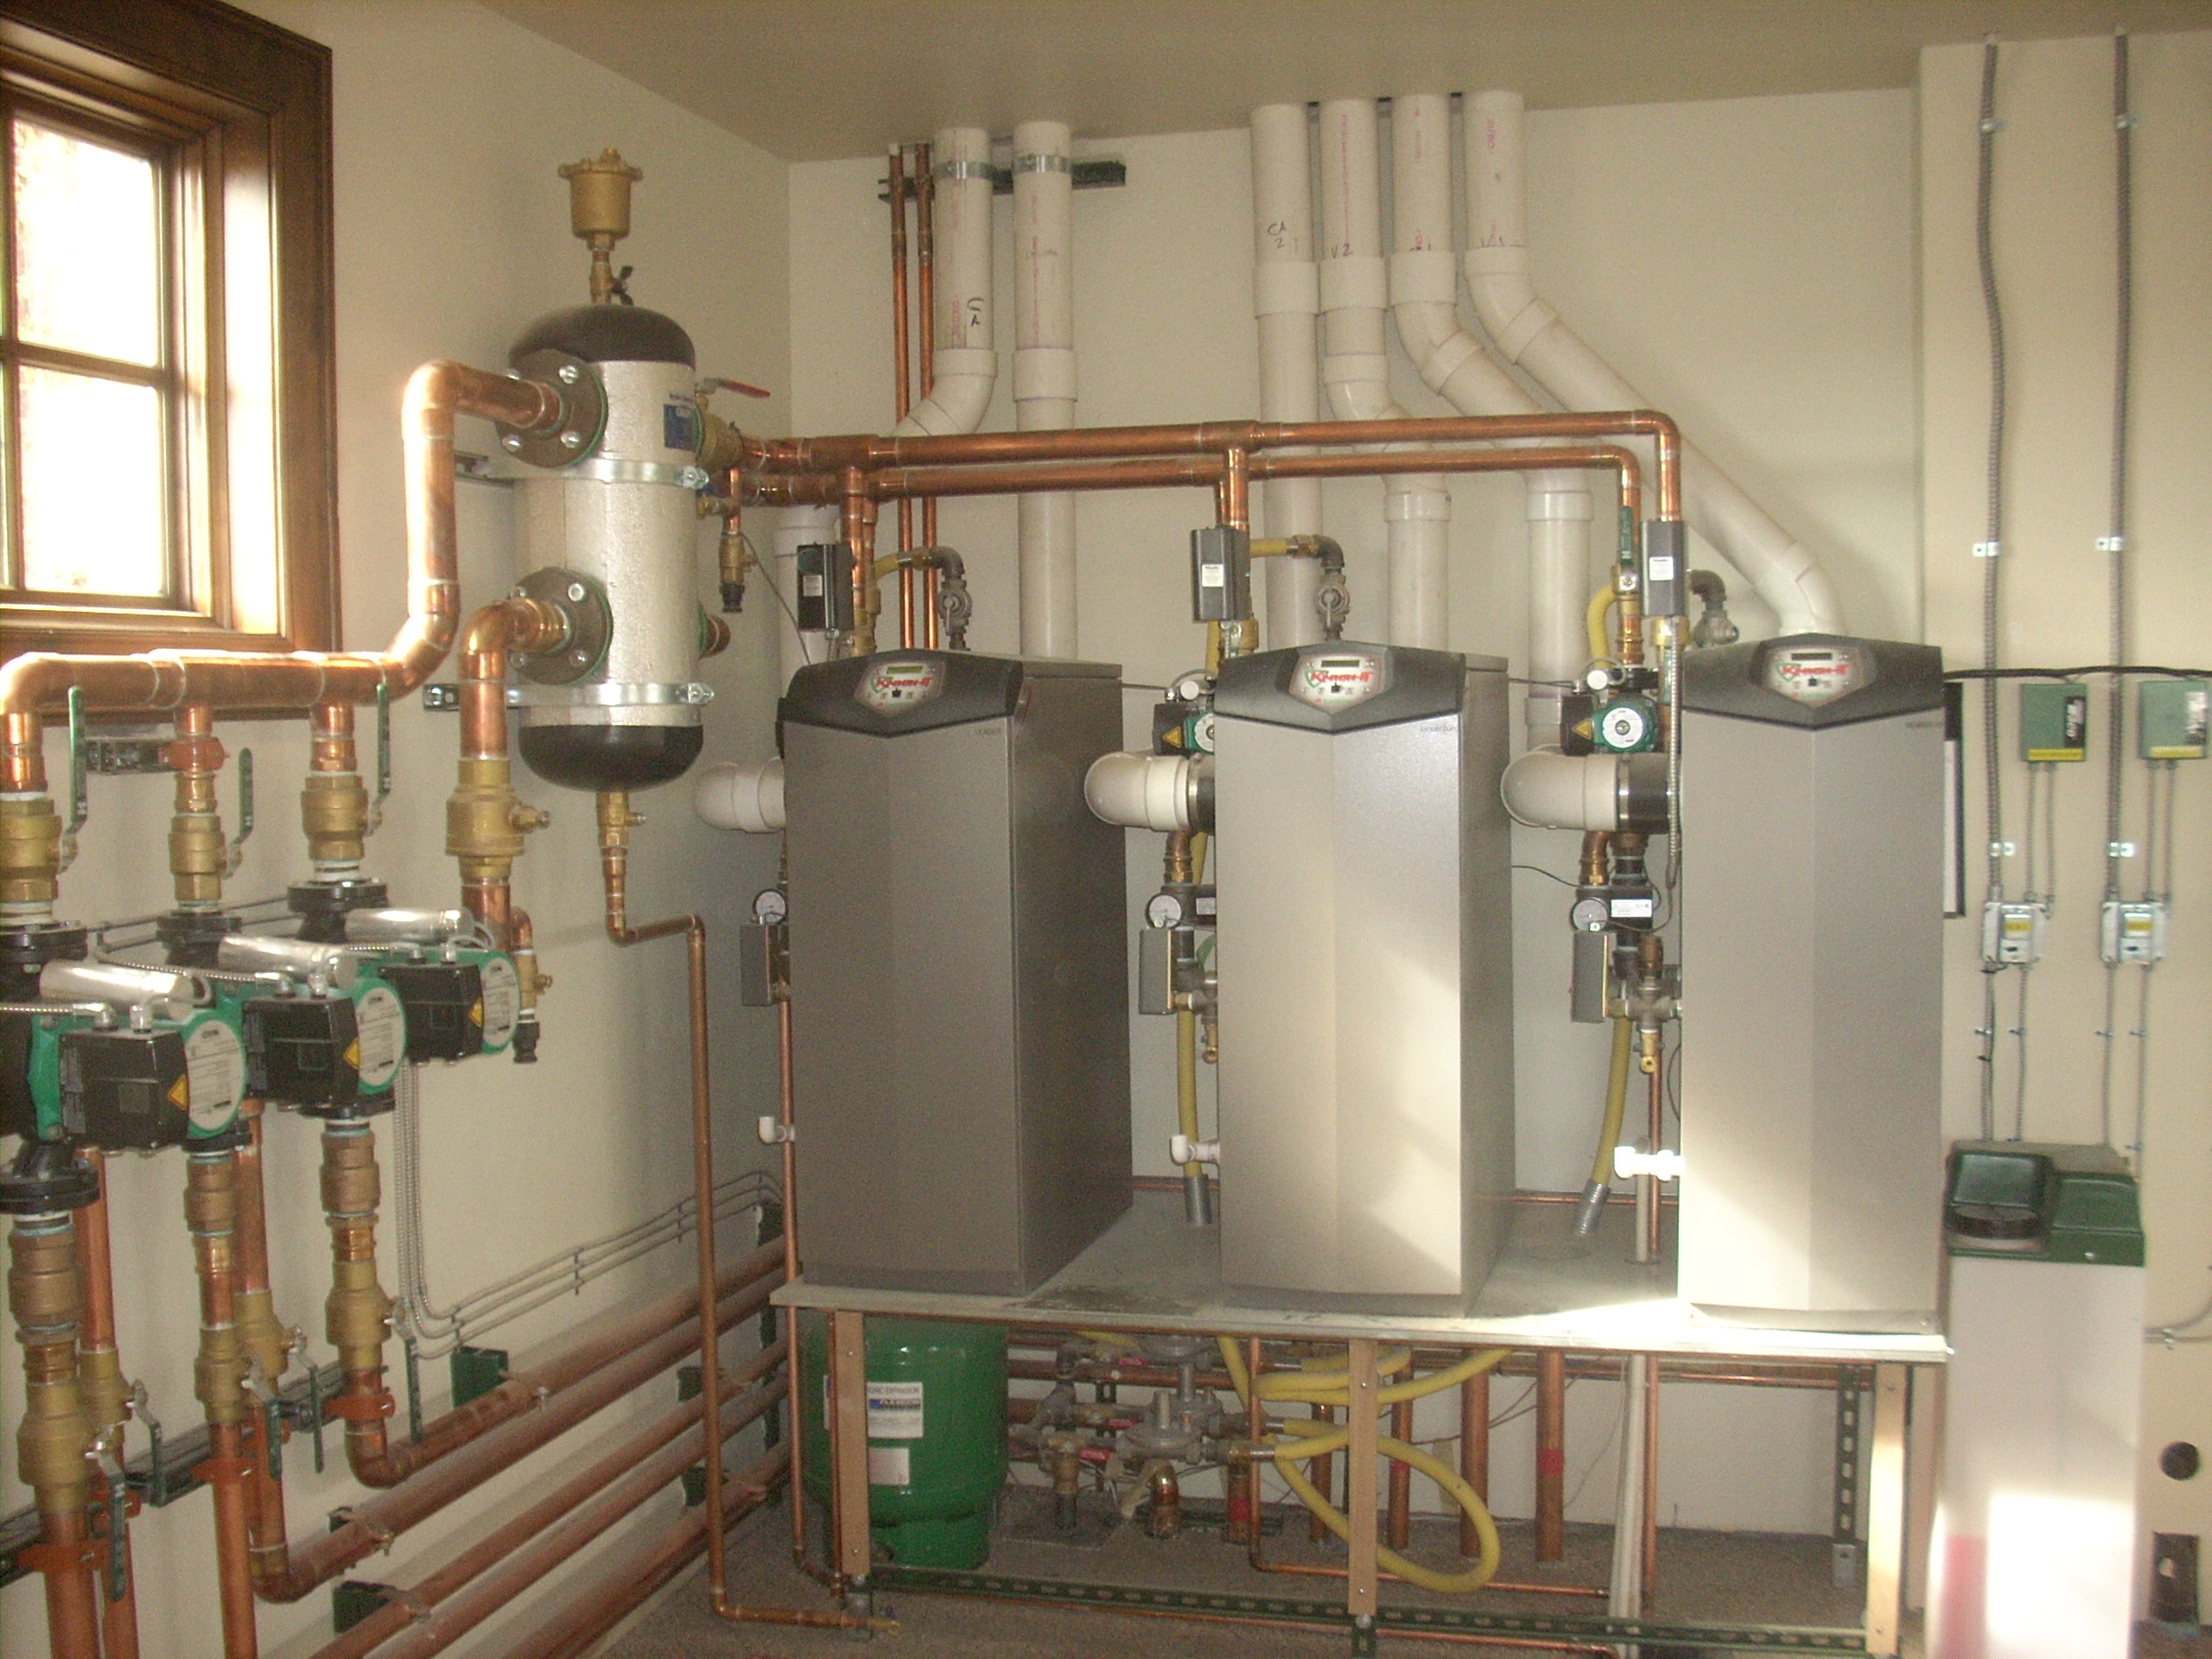 Hydraulic separator in the heating system 96